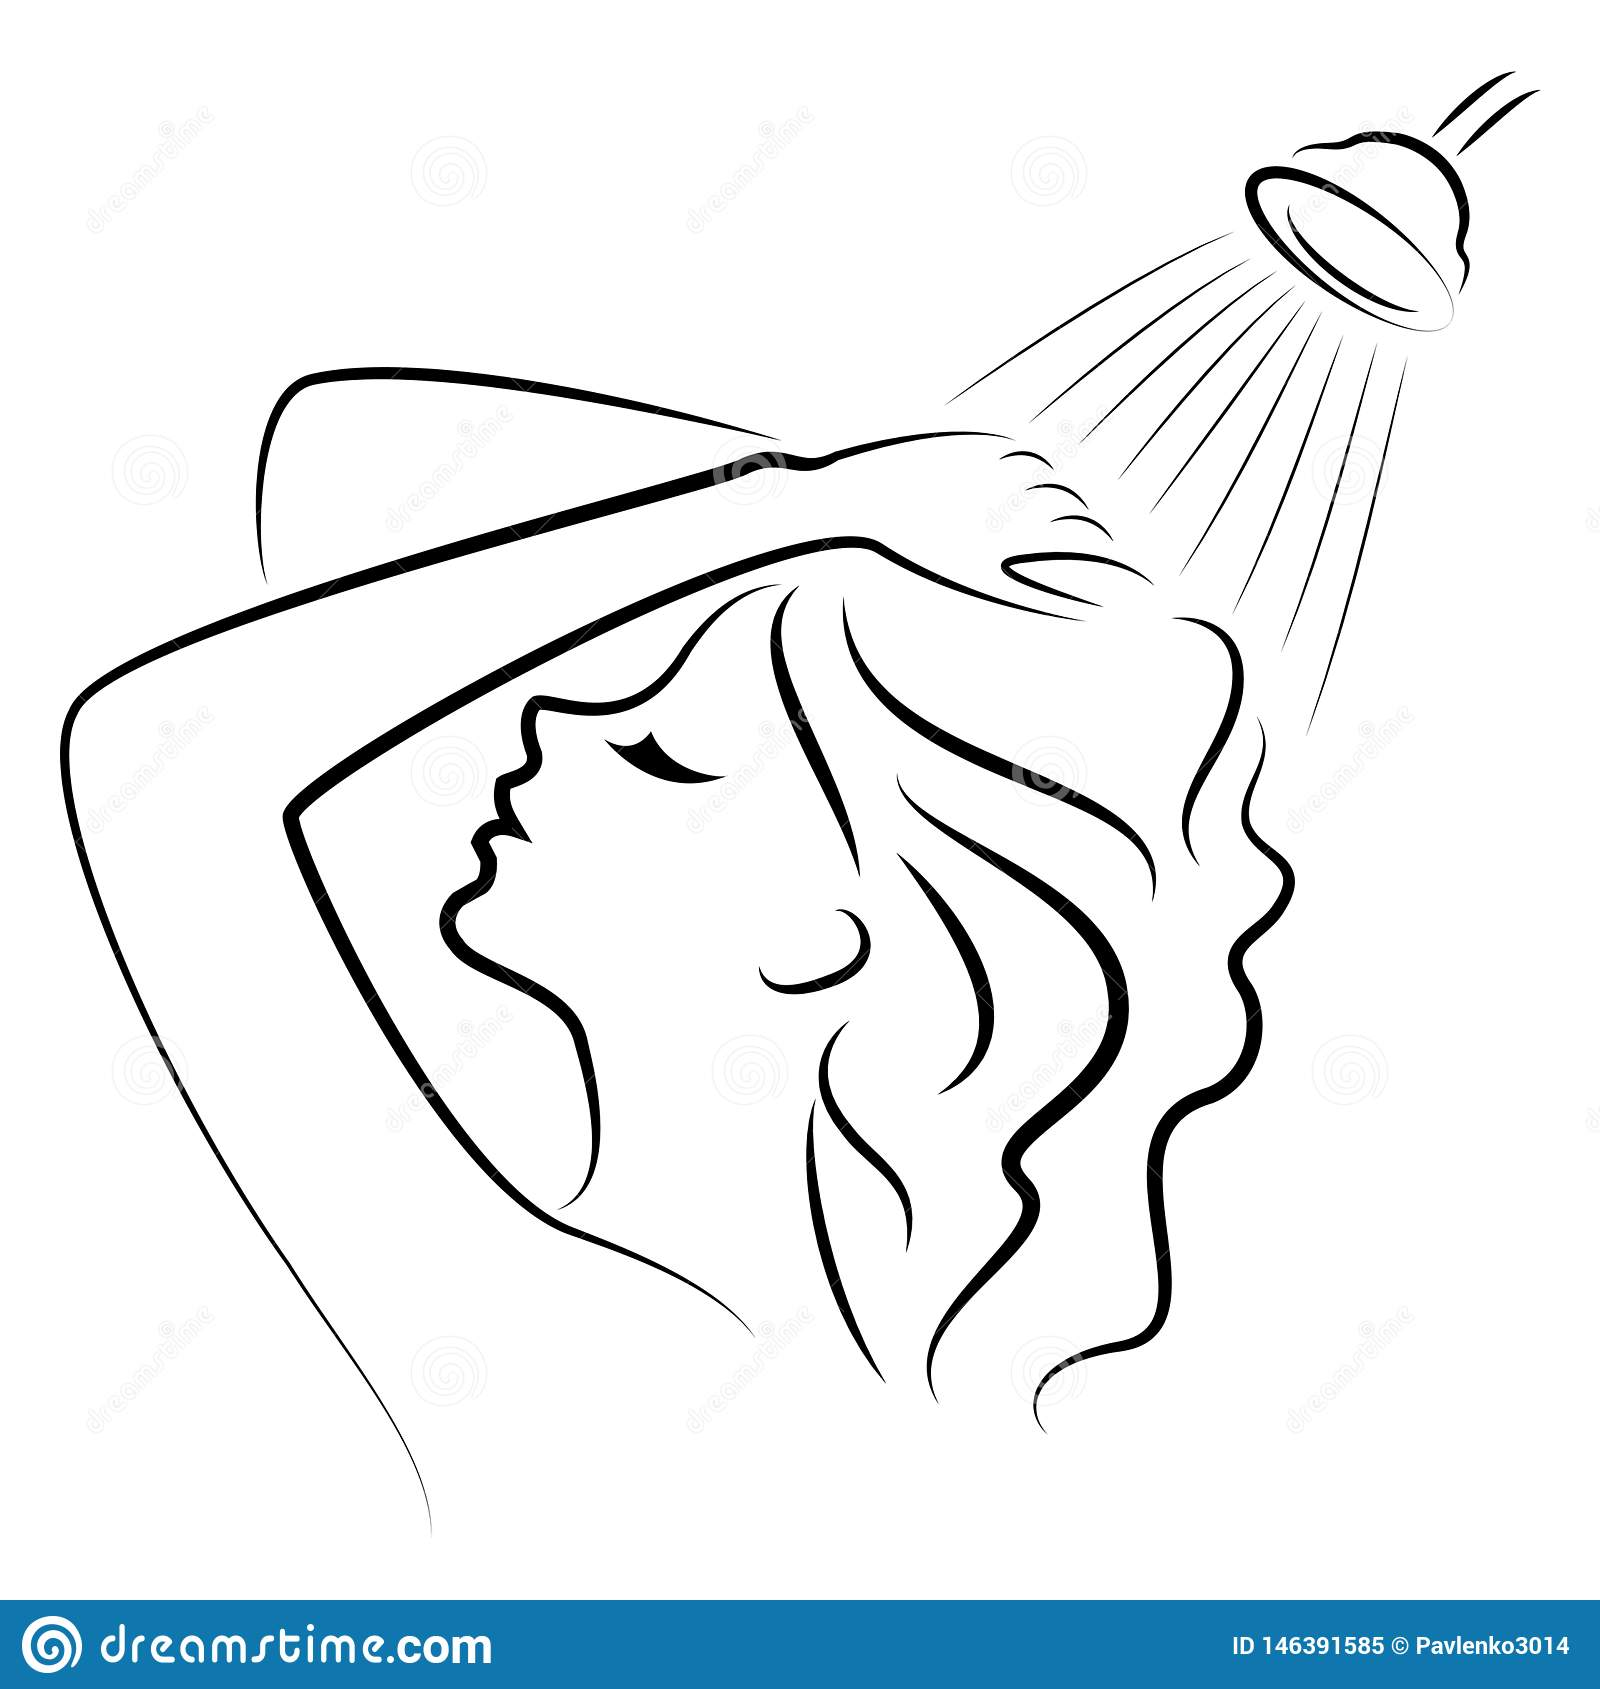 Silhouette of a cute young lady. The girl washes in the shower. A woman washes her hair with shampoo. Vector illustration